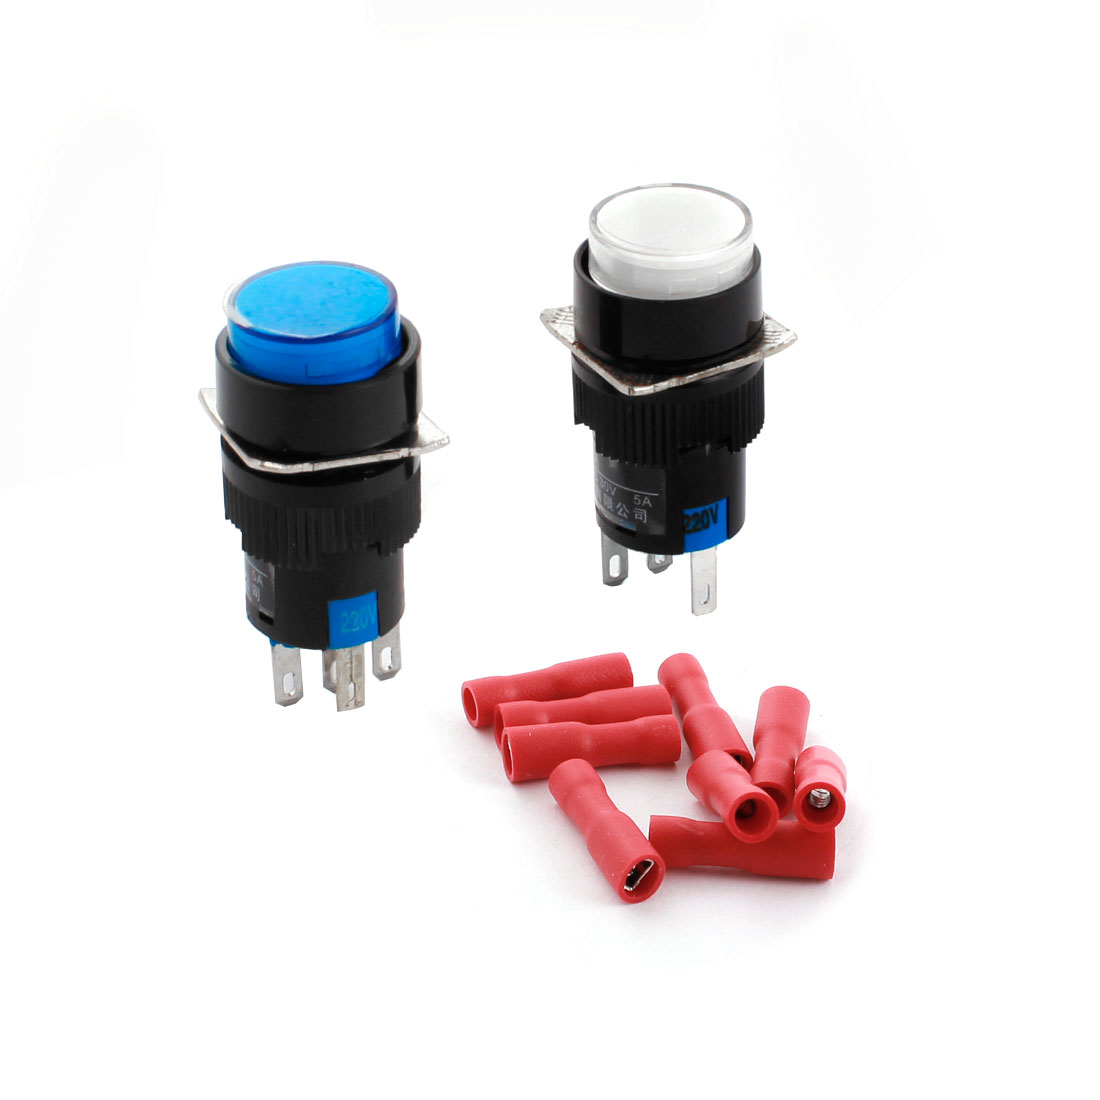 2PCS AC 220V White Blue Indicator Light Lamp 5Pins 16mm Threaded Panel Mounted SPDT Momentary Round Pushbutton Switch + 10pcs Crimp Terminals